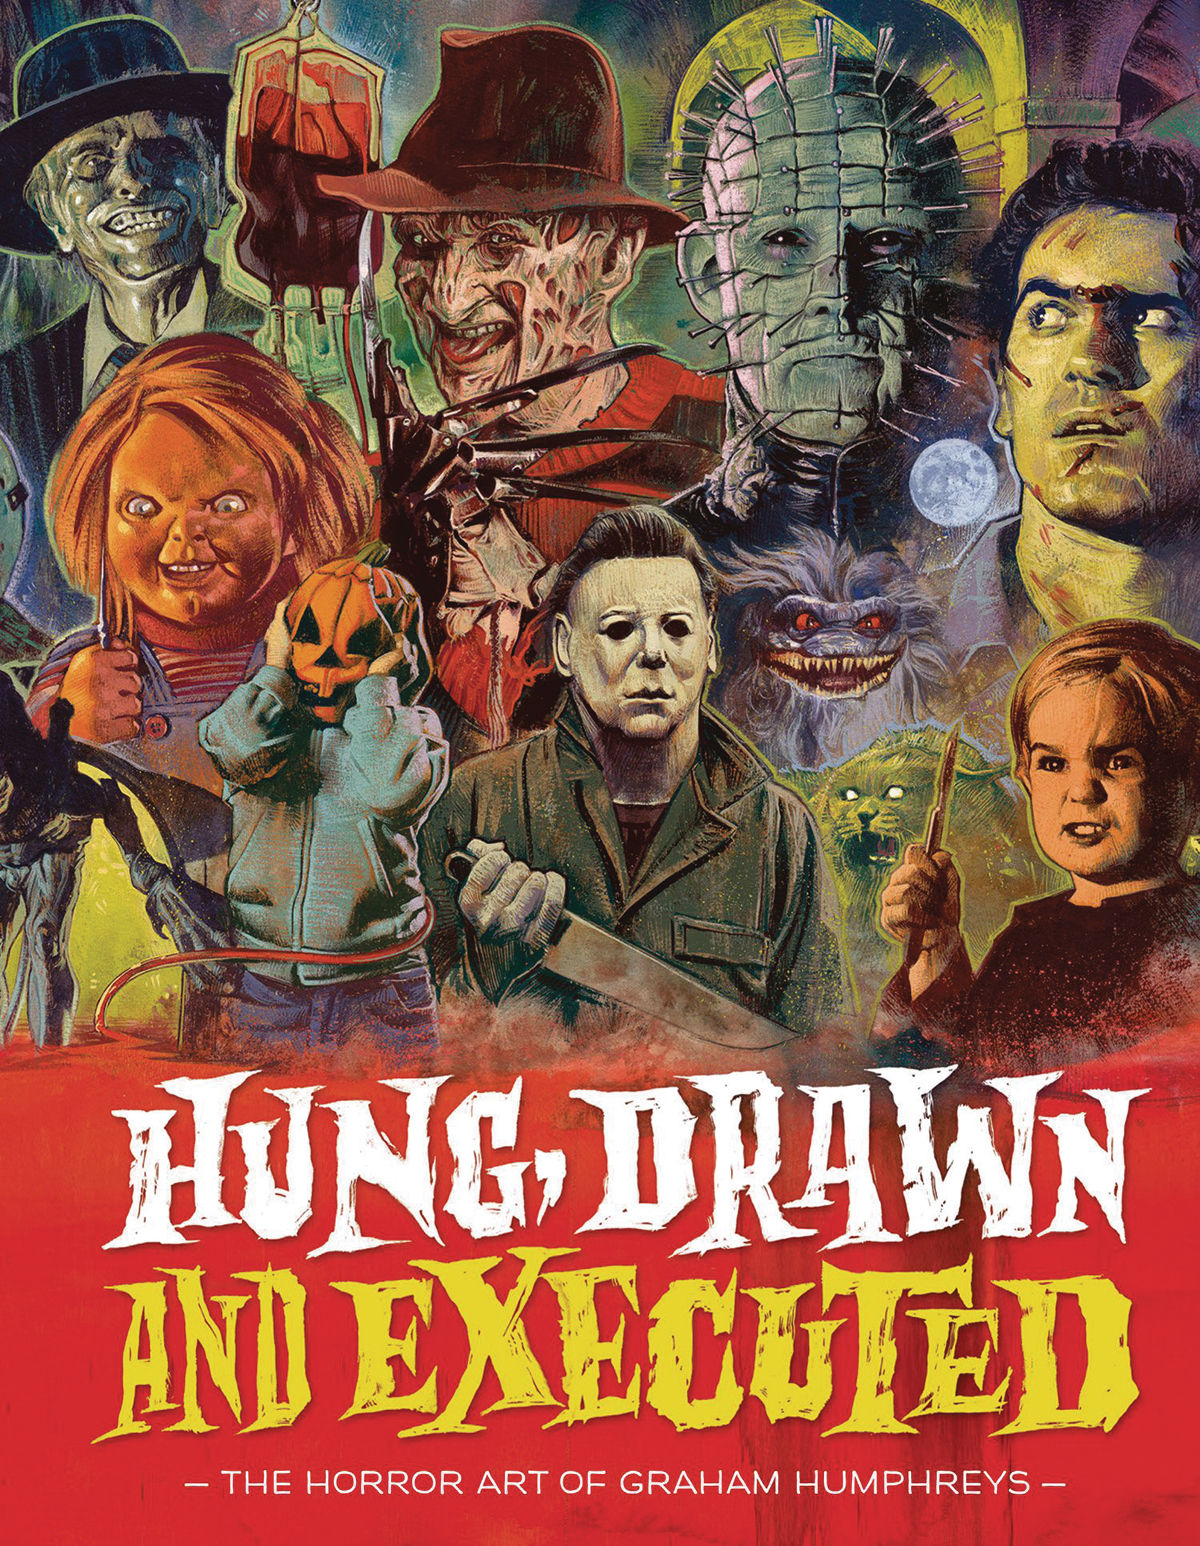 HUNG DRAWN & EXECUTED HORROR ART OF GRAHAM HUMPHREYS (MR) (C